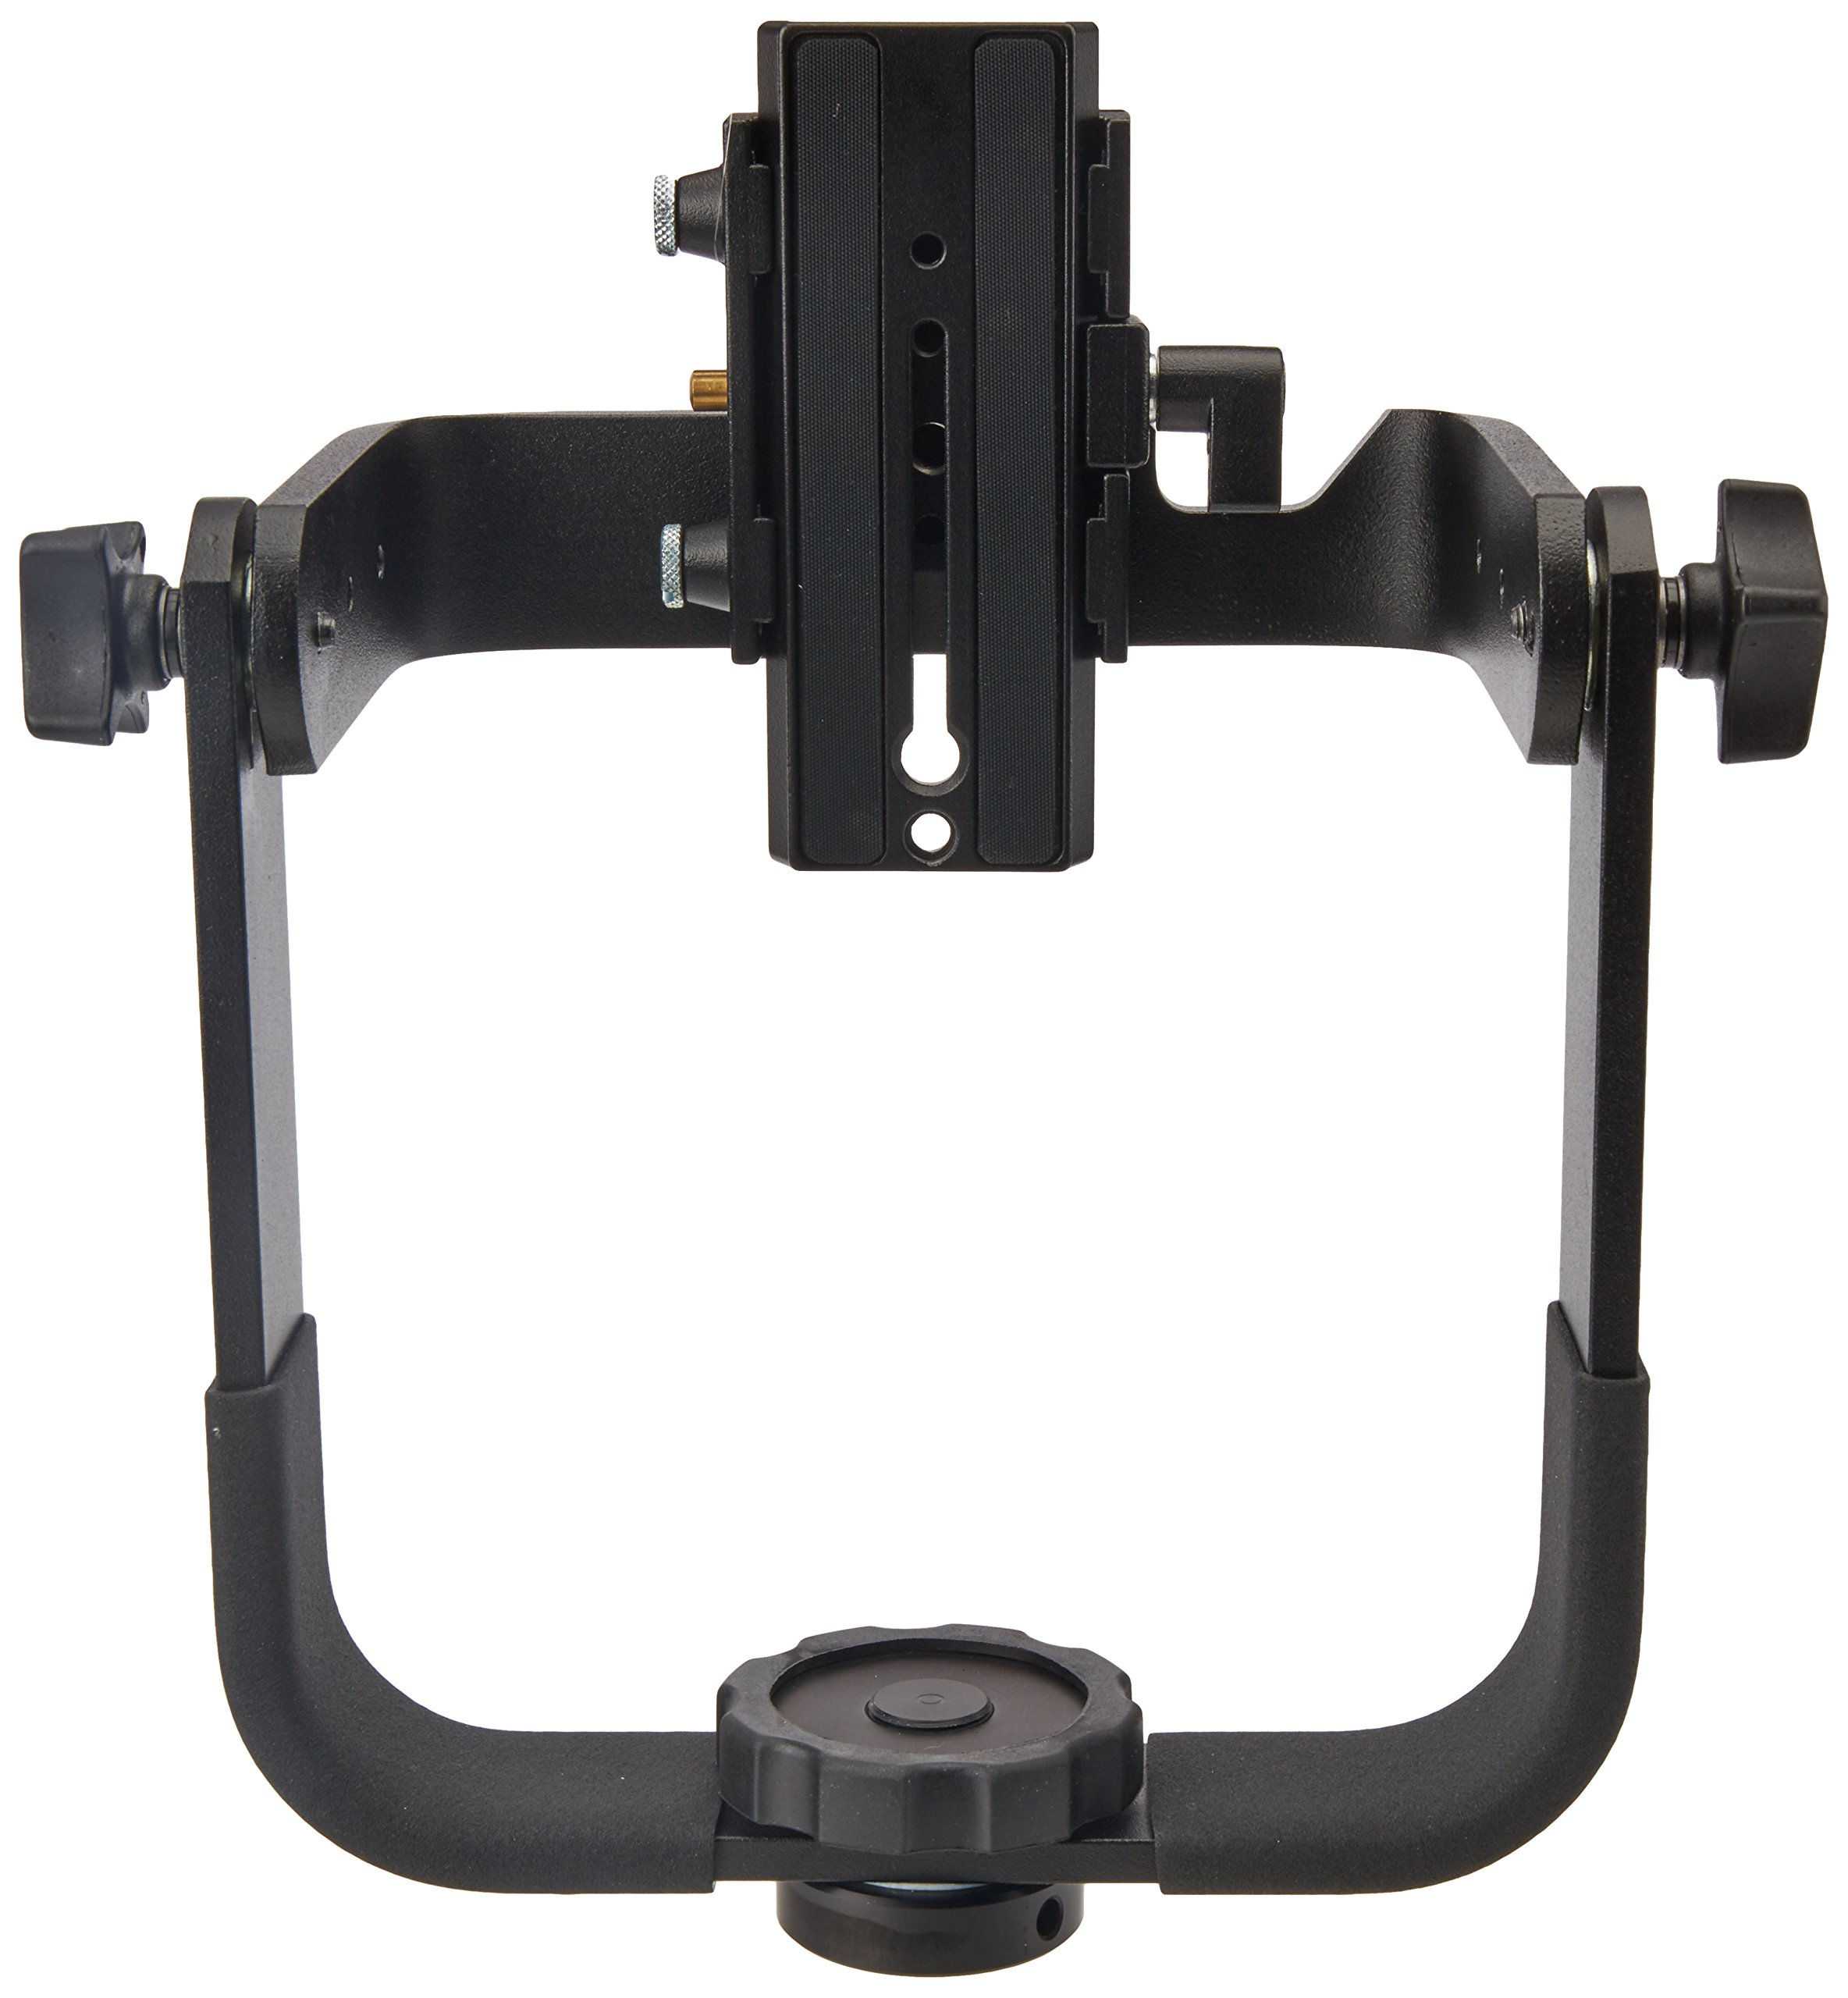 Manfrotto 393 Heavy Telephoto Lens Support for Monopod Replaces 3421 by Manfrotto